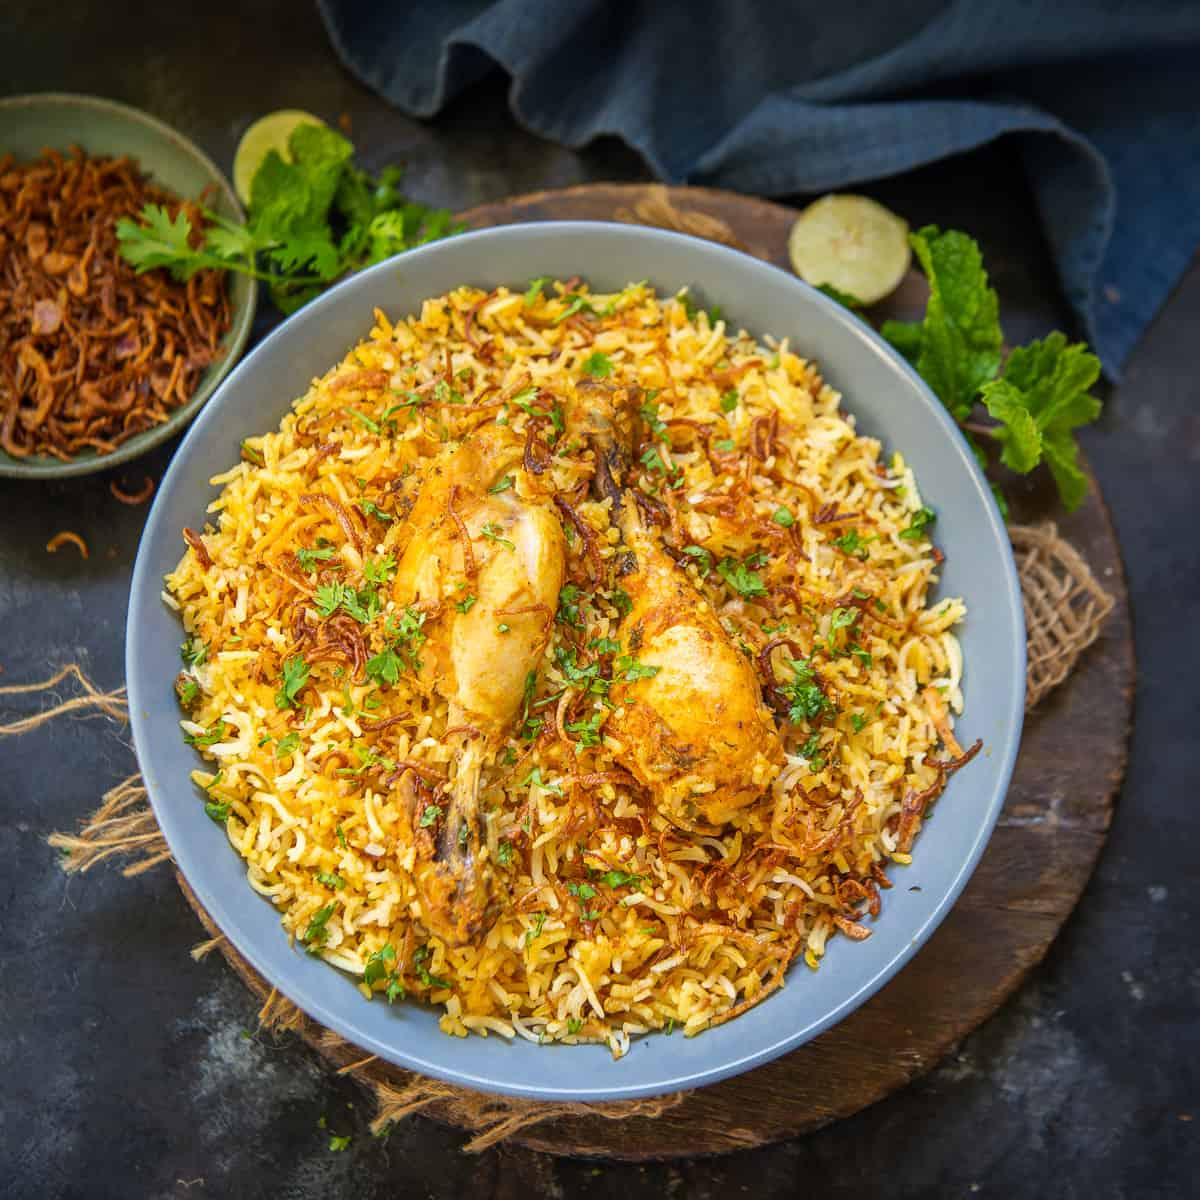 Thinking of something most relishing to eat will give you an idea to have spicy biryani. However, the best thing would be if you can make it at home. You must be looking for the recipe of biryani and we have got the most appropriate one. But wait! Before that, we would like to ask, do you know, from where biryani emerged as one of the most fascinating dishes in the subcontinent? Here we have got some interesting info related to the history of biryani. Check out these details! History of Biryani Biryani is a mixed rice dish with its origins among the Muslims of the Subcontinent. It is made with spices, rice, and meat (chicken, beef, mutton), and sometimes, in addition, eggs and/or potatoes in certain regional varieties. Biryani is popular throughout the Subcontinent, as well as among its diaspora. It is also prepared in other regions such as parts of Afghanistan, Iran and Iraq. Biryani is a dish that has acquired a niche for itself in South Asian cuisine. Biryani is an Indo-Aryan word derived from the Persian language. The exact origin of the dish is uncertain. However, in North India, different varieties of biryani developed in the Muslim centres of Delhi, Lucknow, and other small principalities. In South India, rice is more widely used as a staple food. So, several distinct varieties of biryani emerged from Hyderabad Deccan as well as Tamil Nadu, Kerala, Andhra Pradesh, and Karnataka, where Muslim communities were present. Different Types of Biryani Biryani is made with different variations and each of its forms are scrumptiously delicious. Here we have got a review of various spicy versions of mouthwatering biryani from the Subcontinent. Hyderabadi Biryani Hyderabadi Biryani has come straight from the streets of the Hyderabad city with authentic flavours. It is one of the most popular forms of biryani presenting a range of aromatic spicy flavors. Hyderabadi Biryani is half-boiled rice layered with fried onions, mint, cooked meat, and cooked dum style. Qeema Biryan